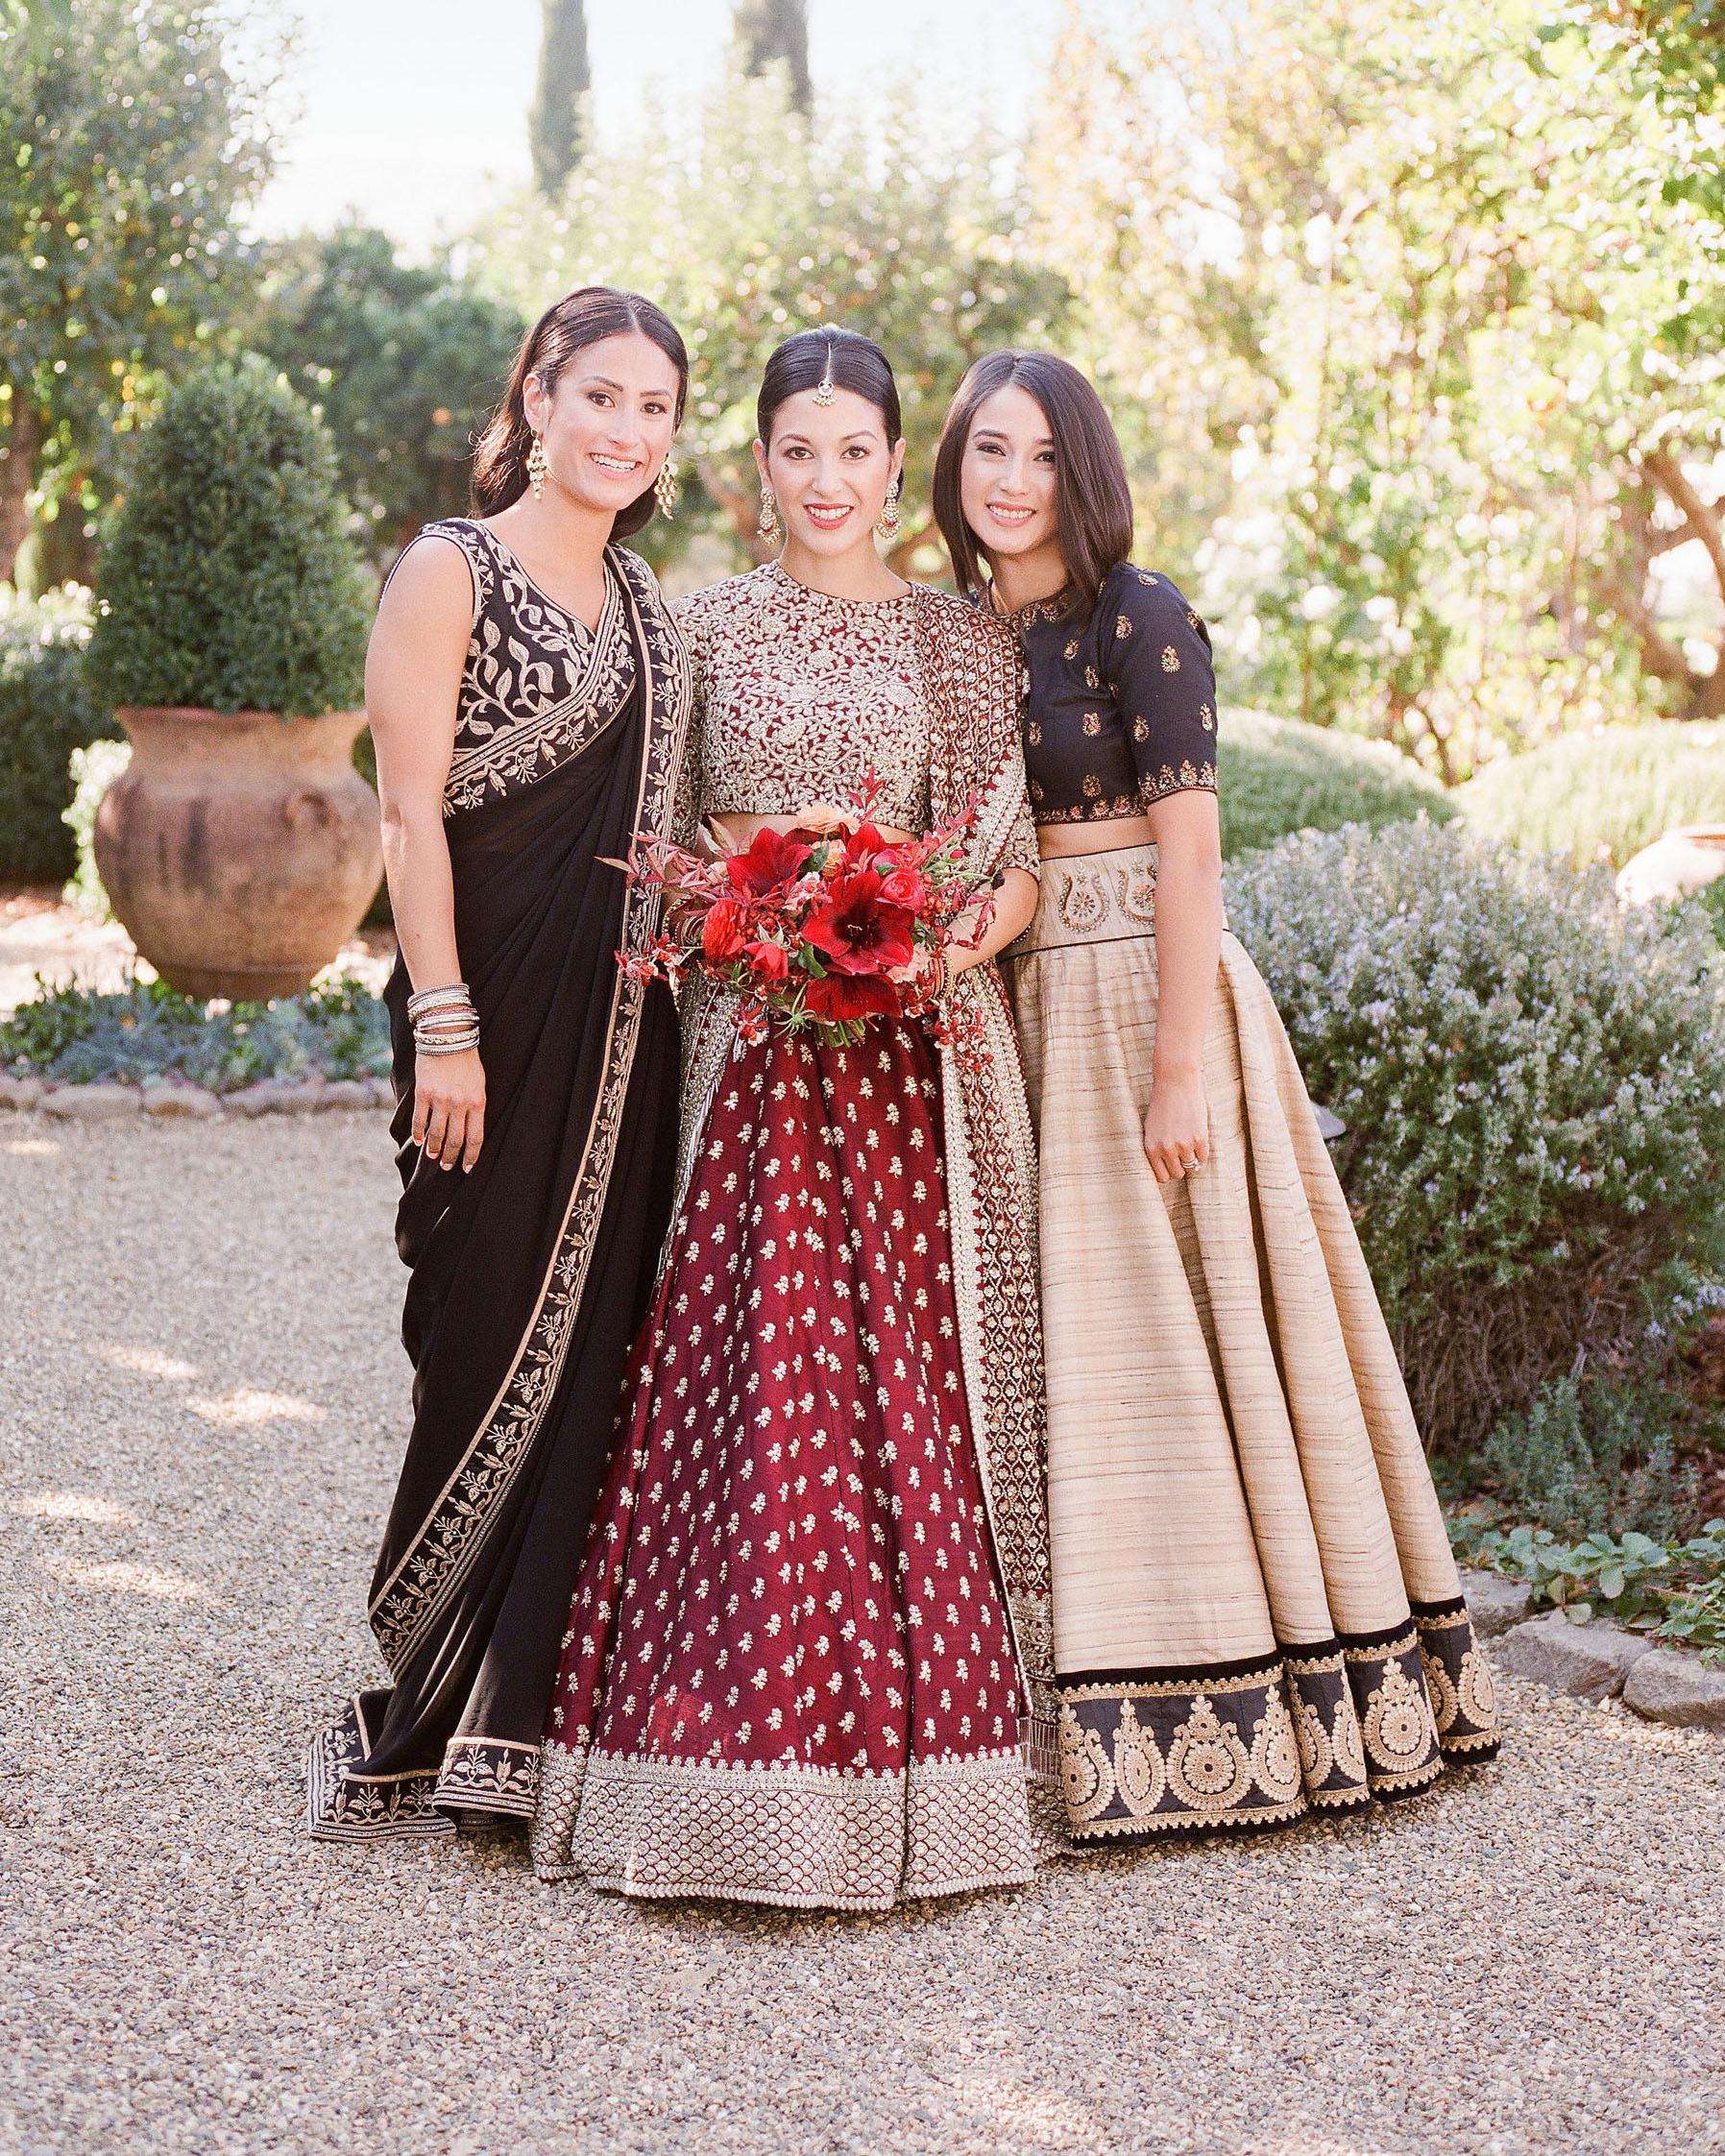 jenna alok wedding wine country california bride sisters